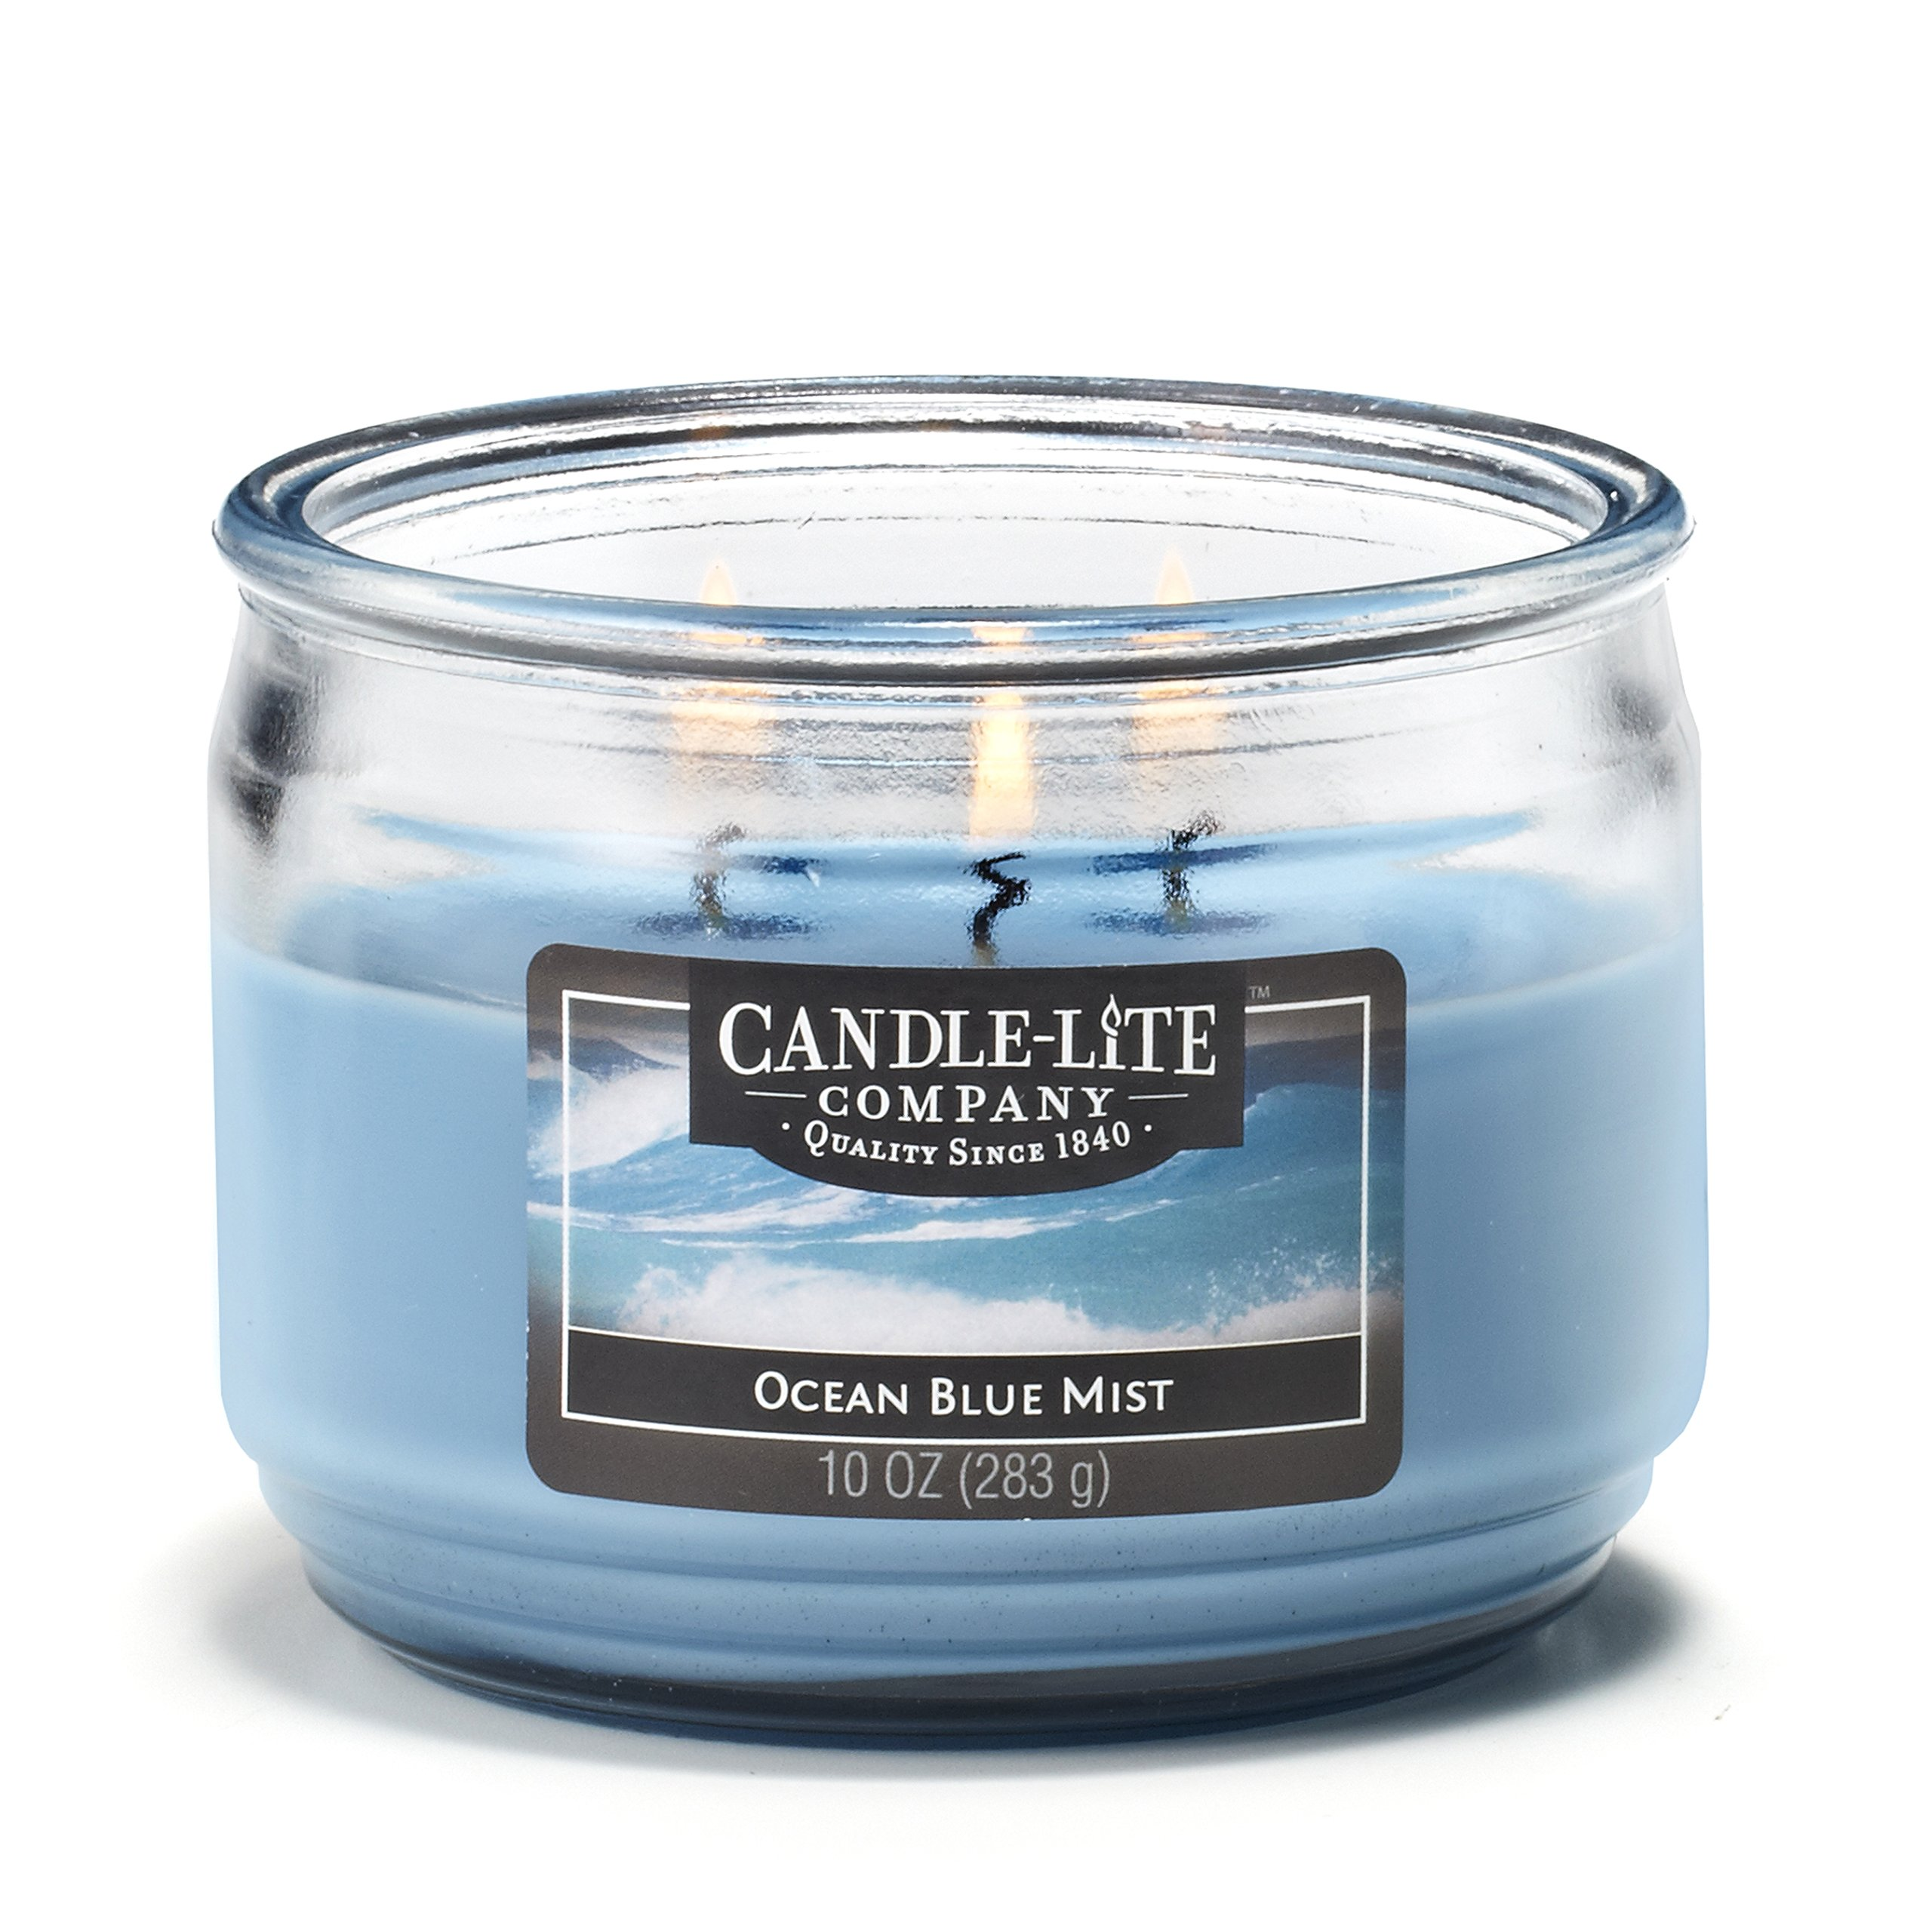 Candle-Lite Everyday Scented Ocean Blue Mist 3-Wick 10oz Medium Glass Jar Candle, Fresh Ozonic Fragrance